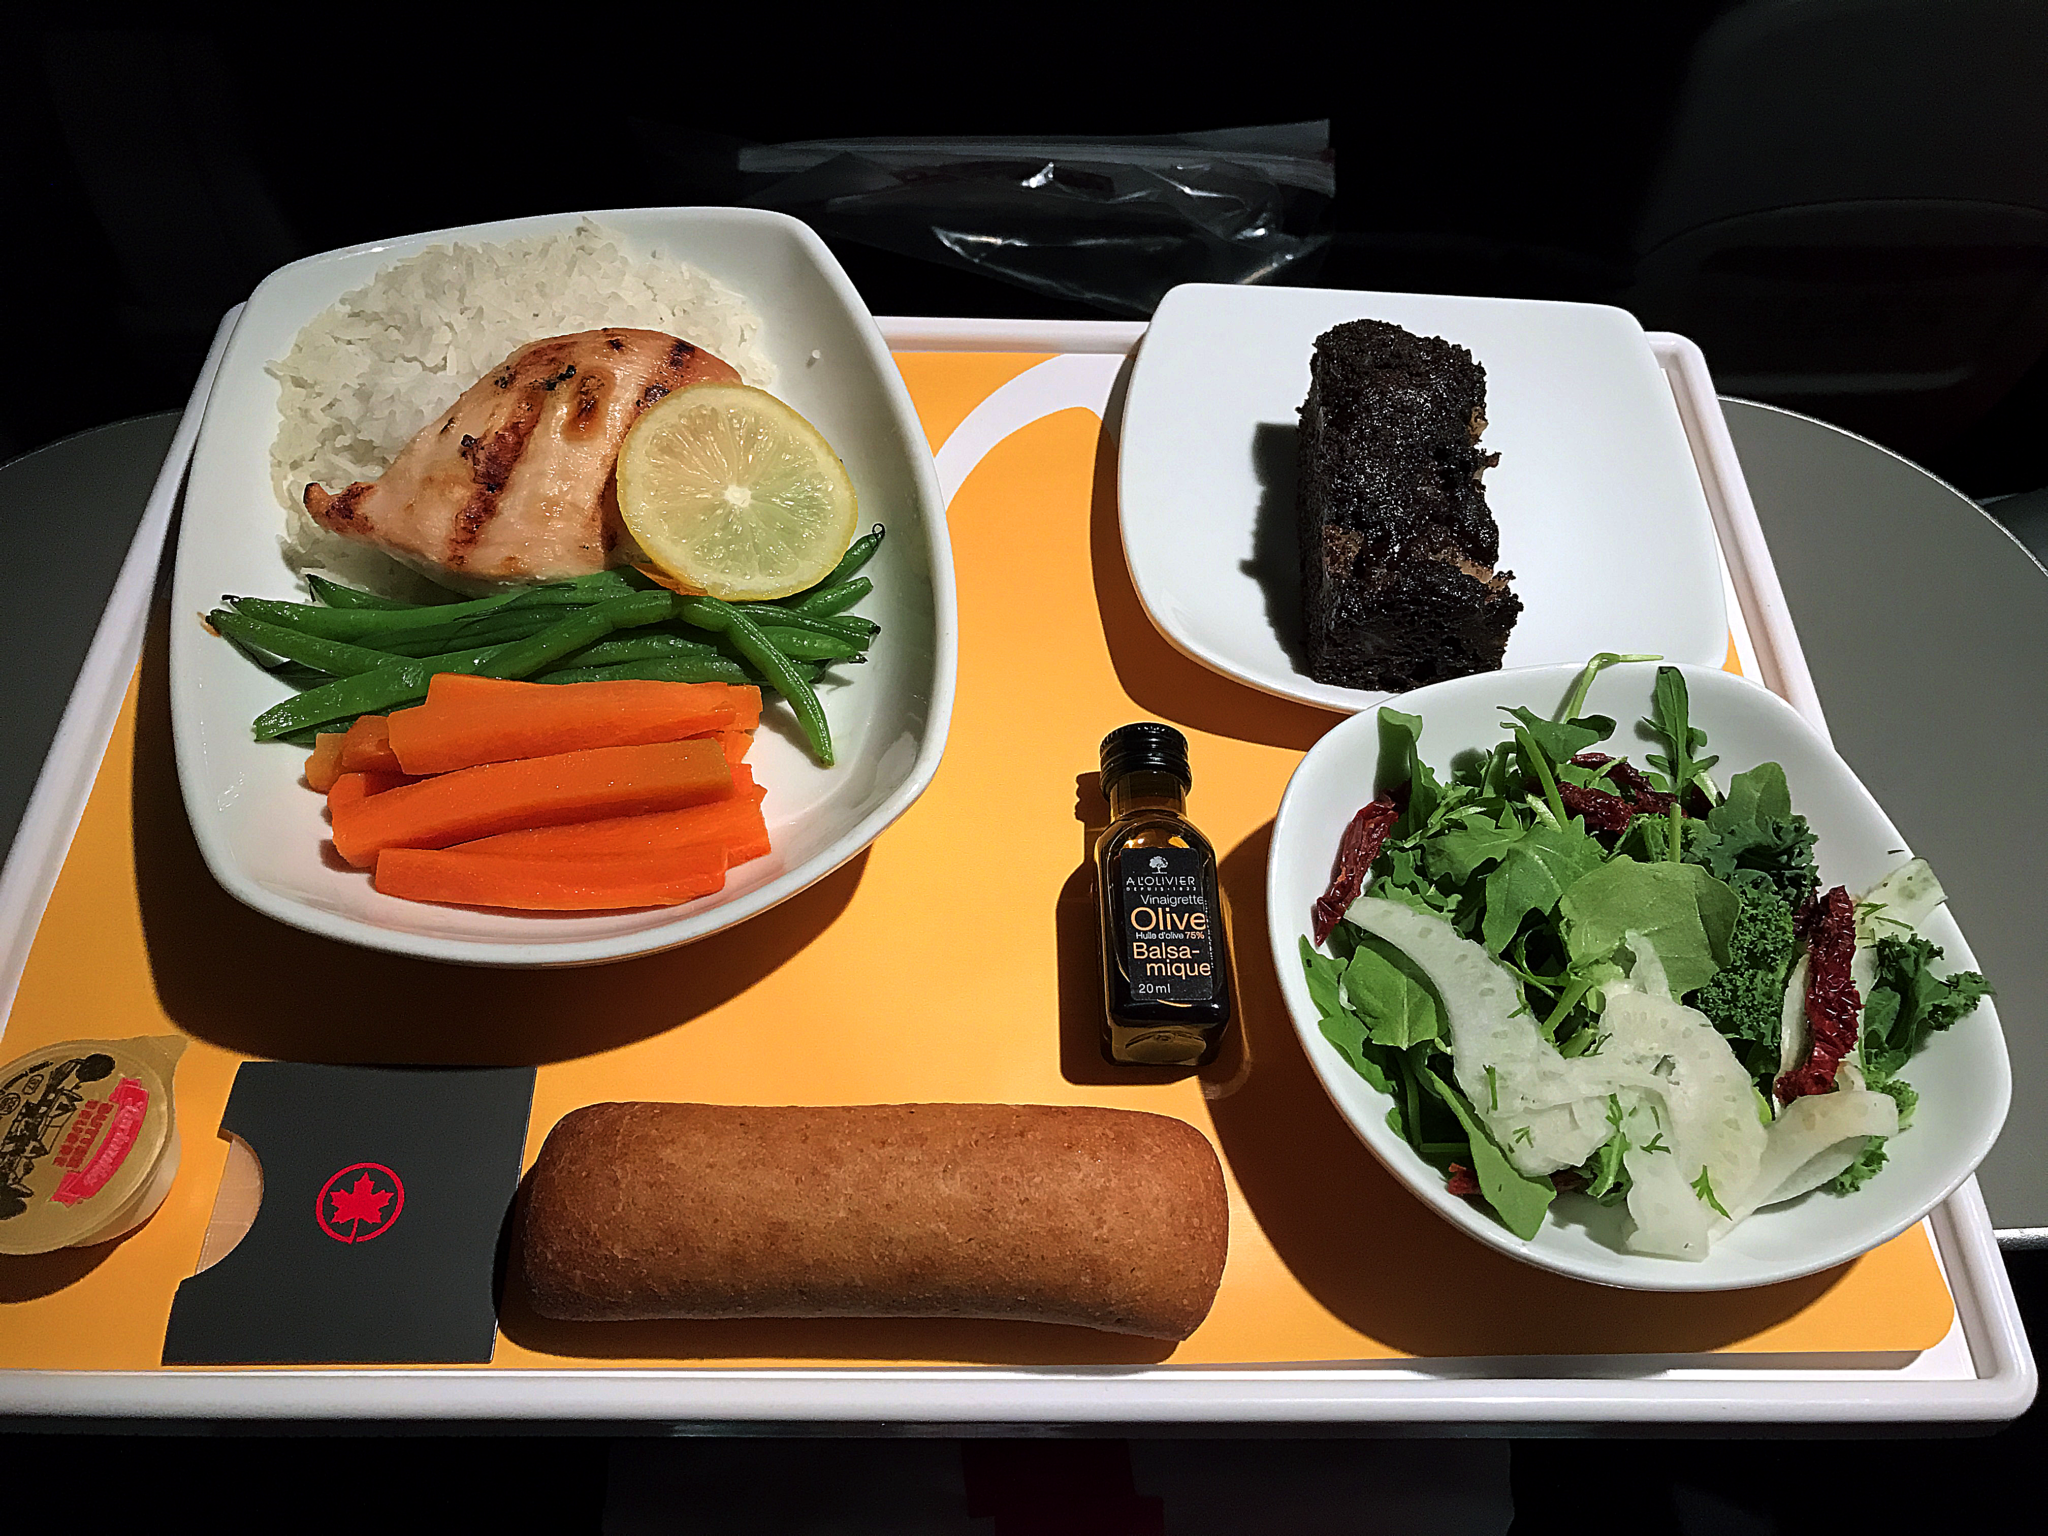 Airbus A319 100 Air Canada Rouge Premium Seats Inflight Amenities Food Meal Services